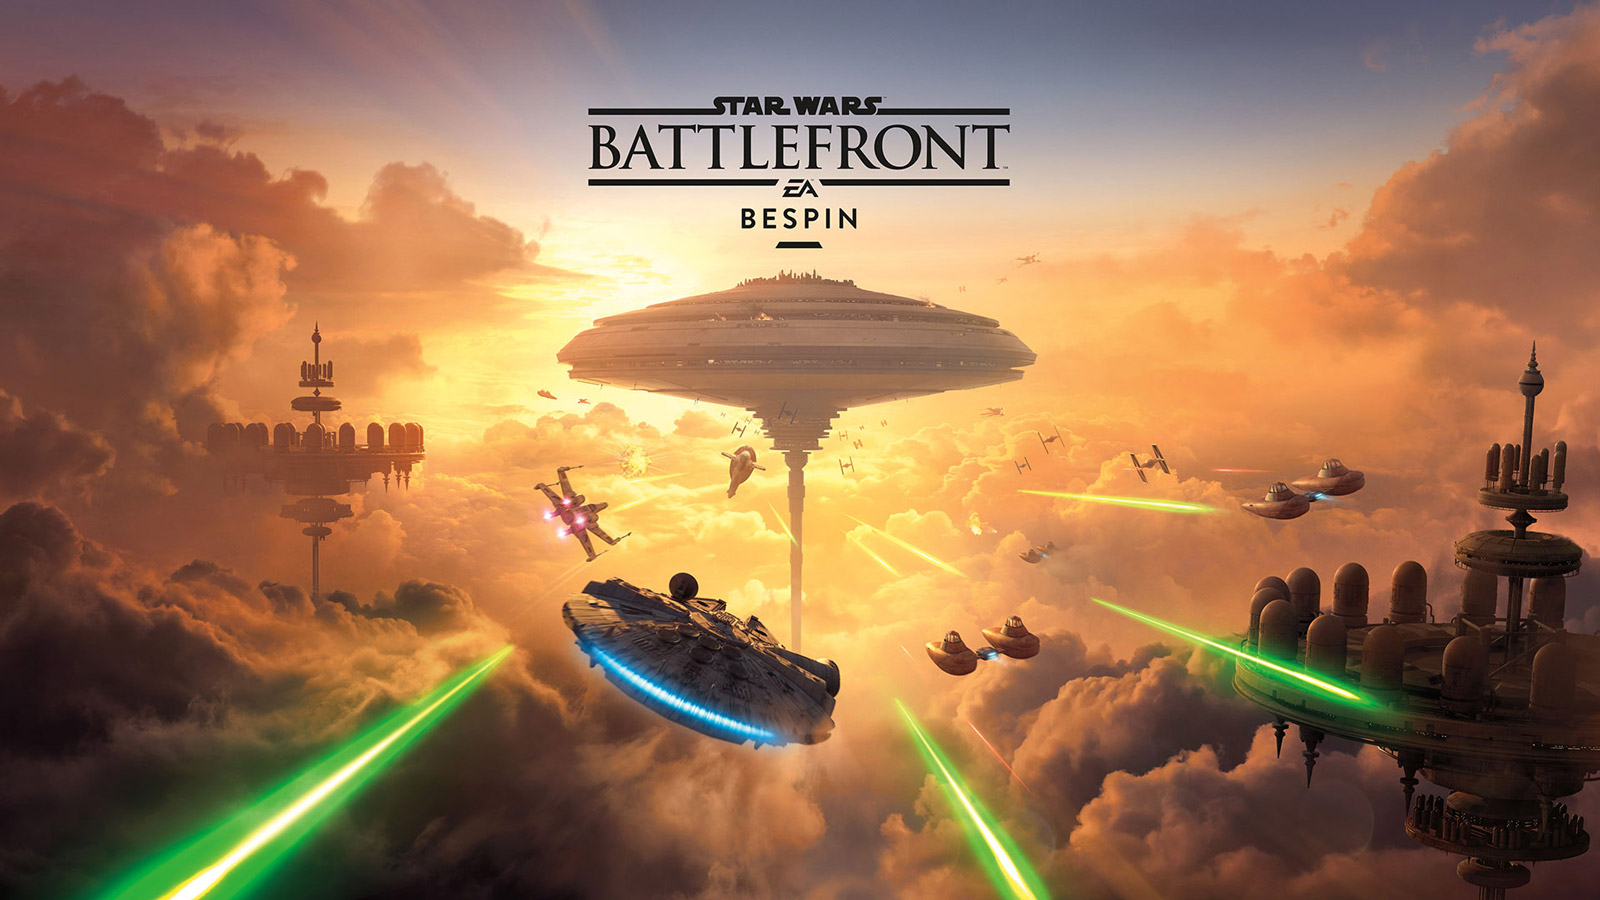 Free Star Wars: Battlefront Wallpaper in 1600x900